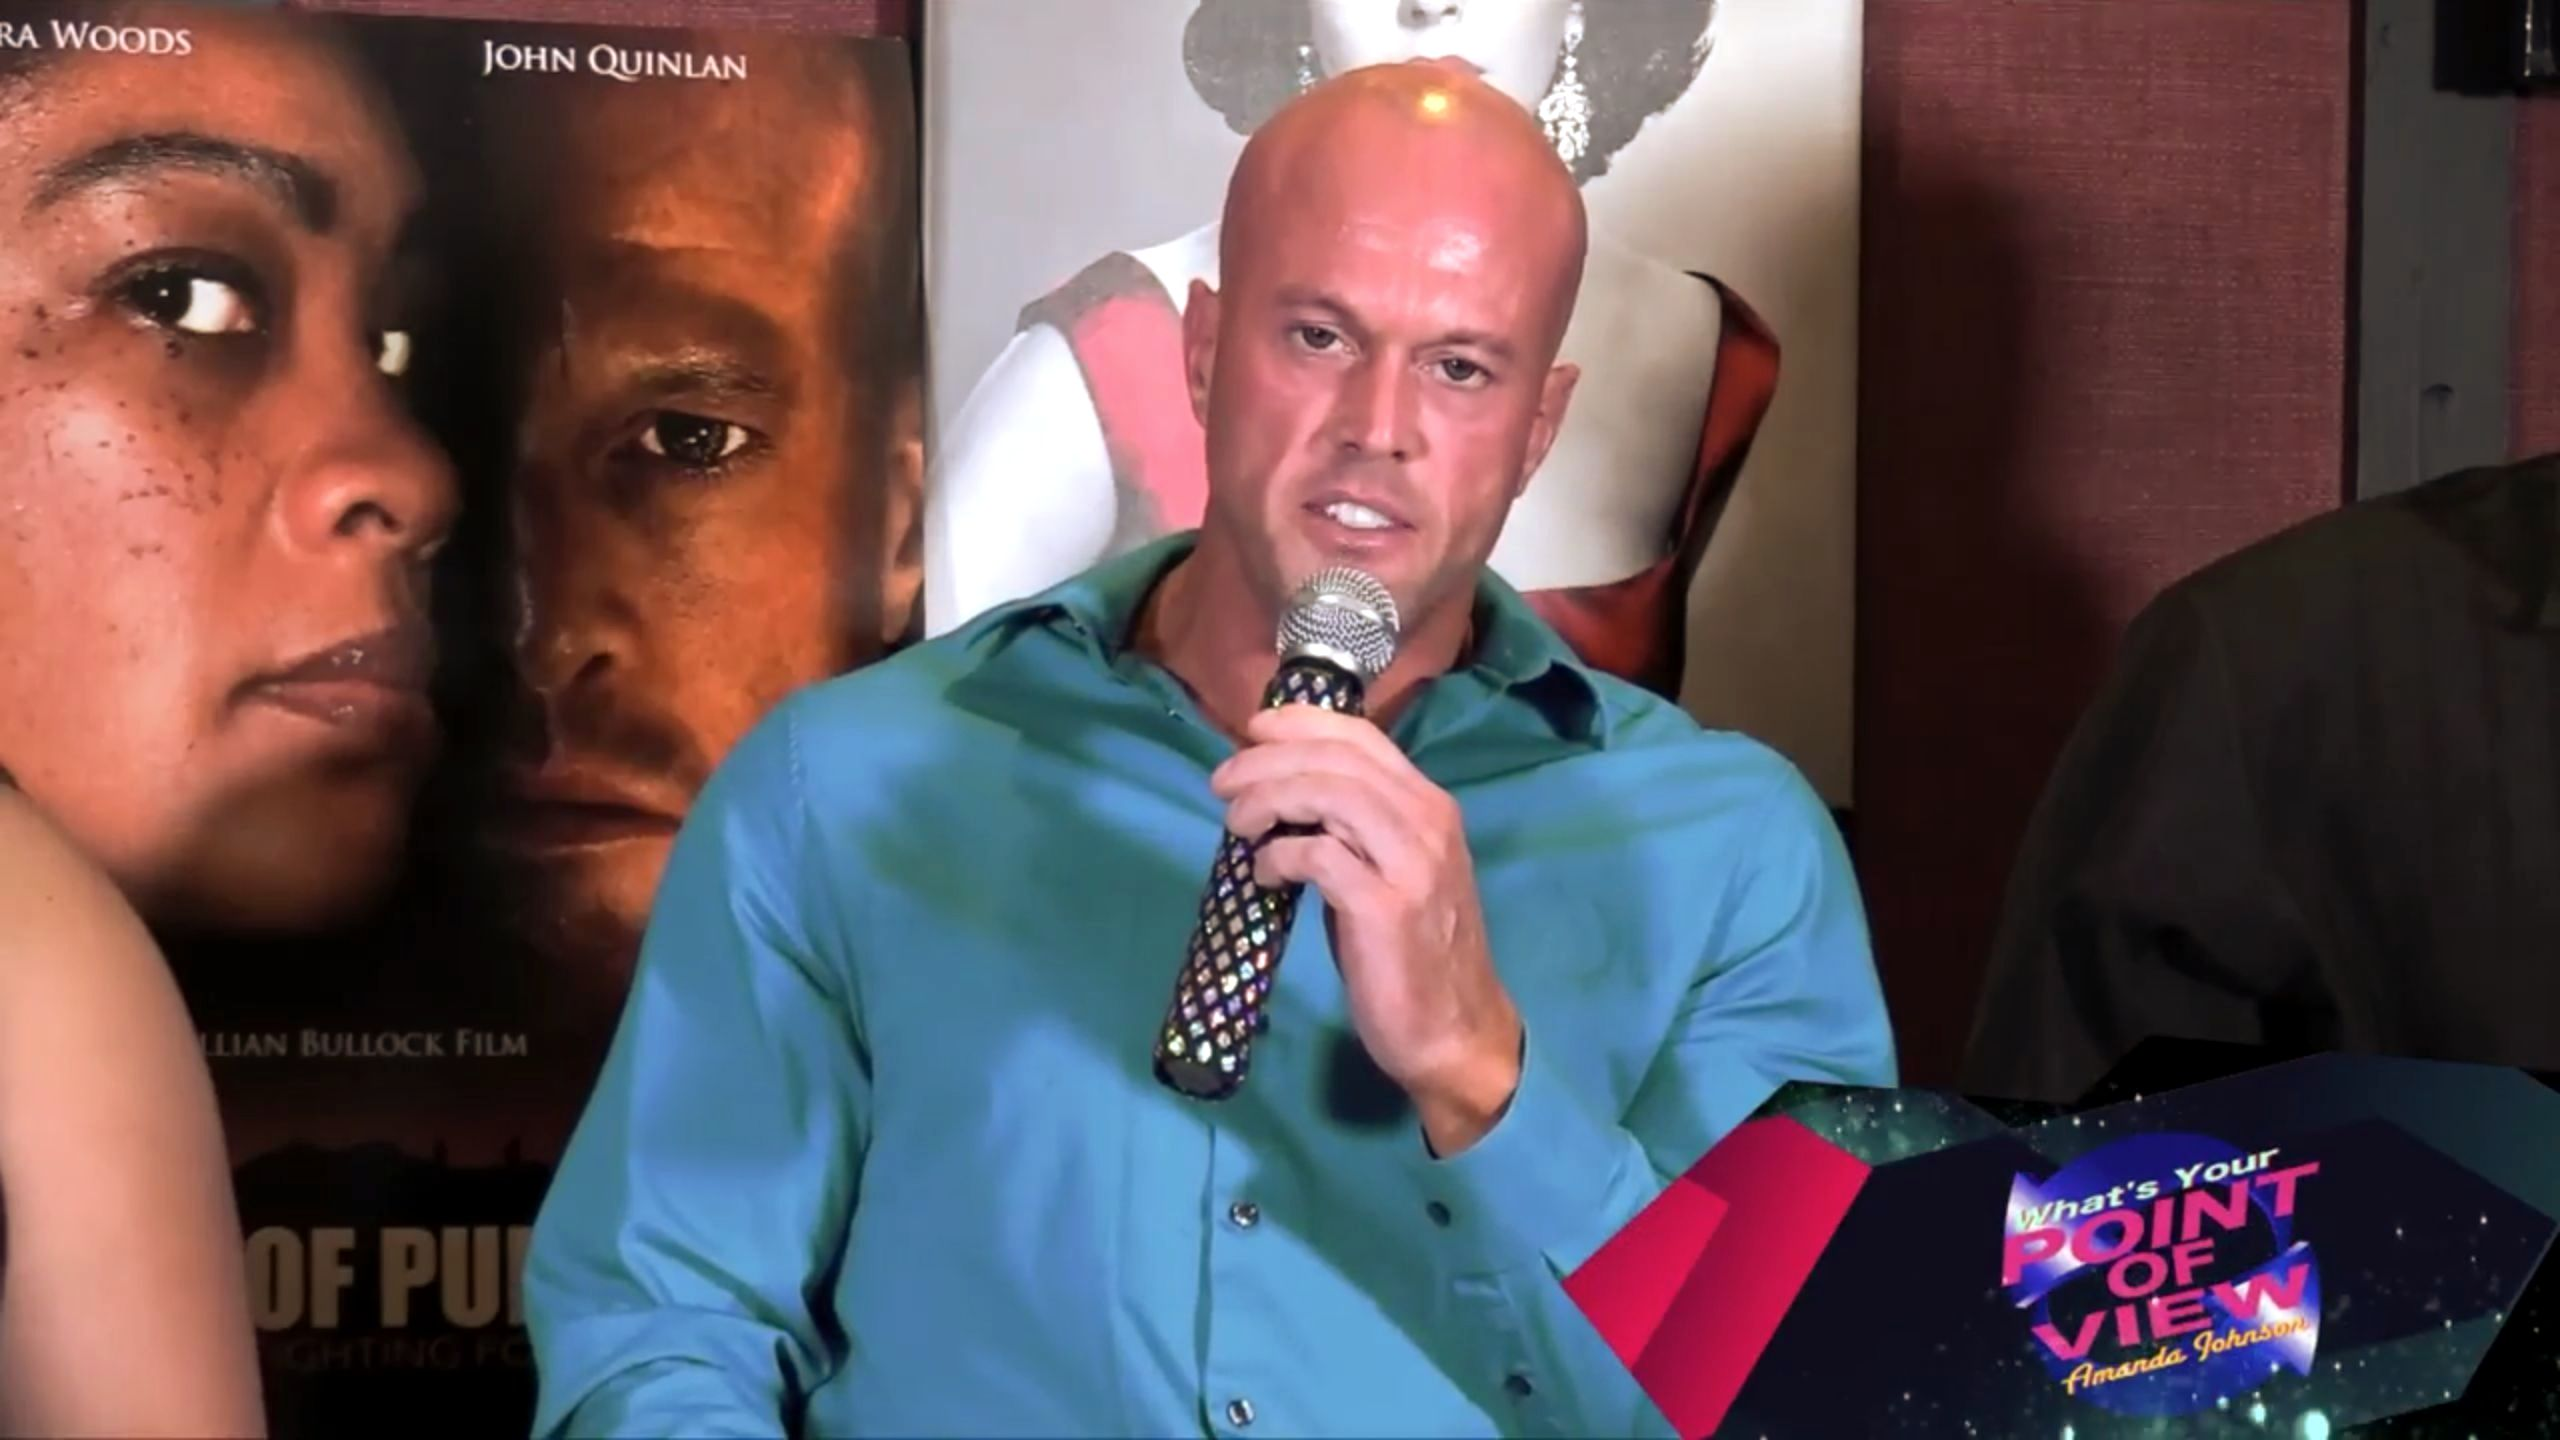 Actor John Quinlan & ASOP Cast What's Your Point of View TV Interview #JohnQuinlan